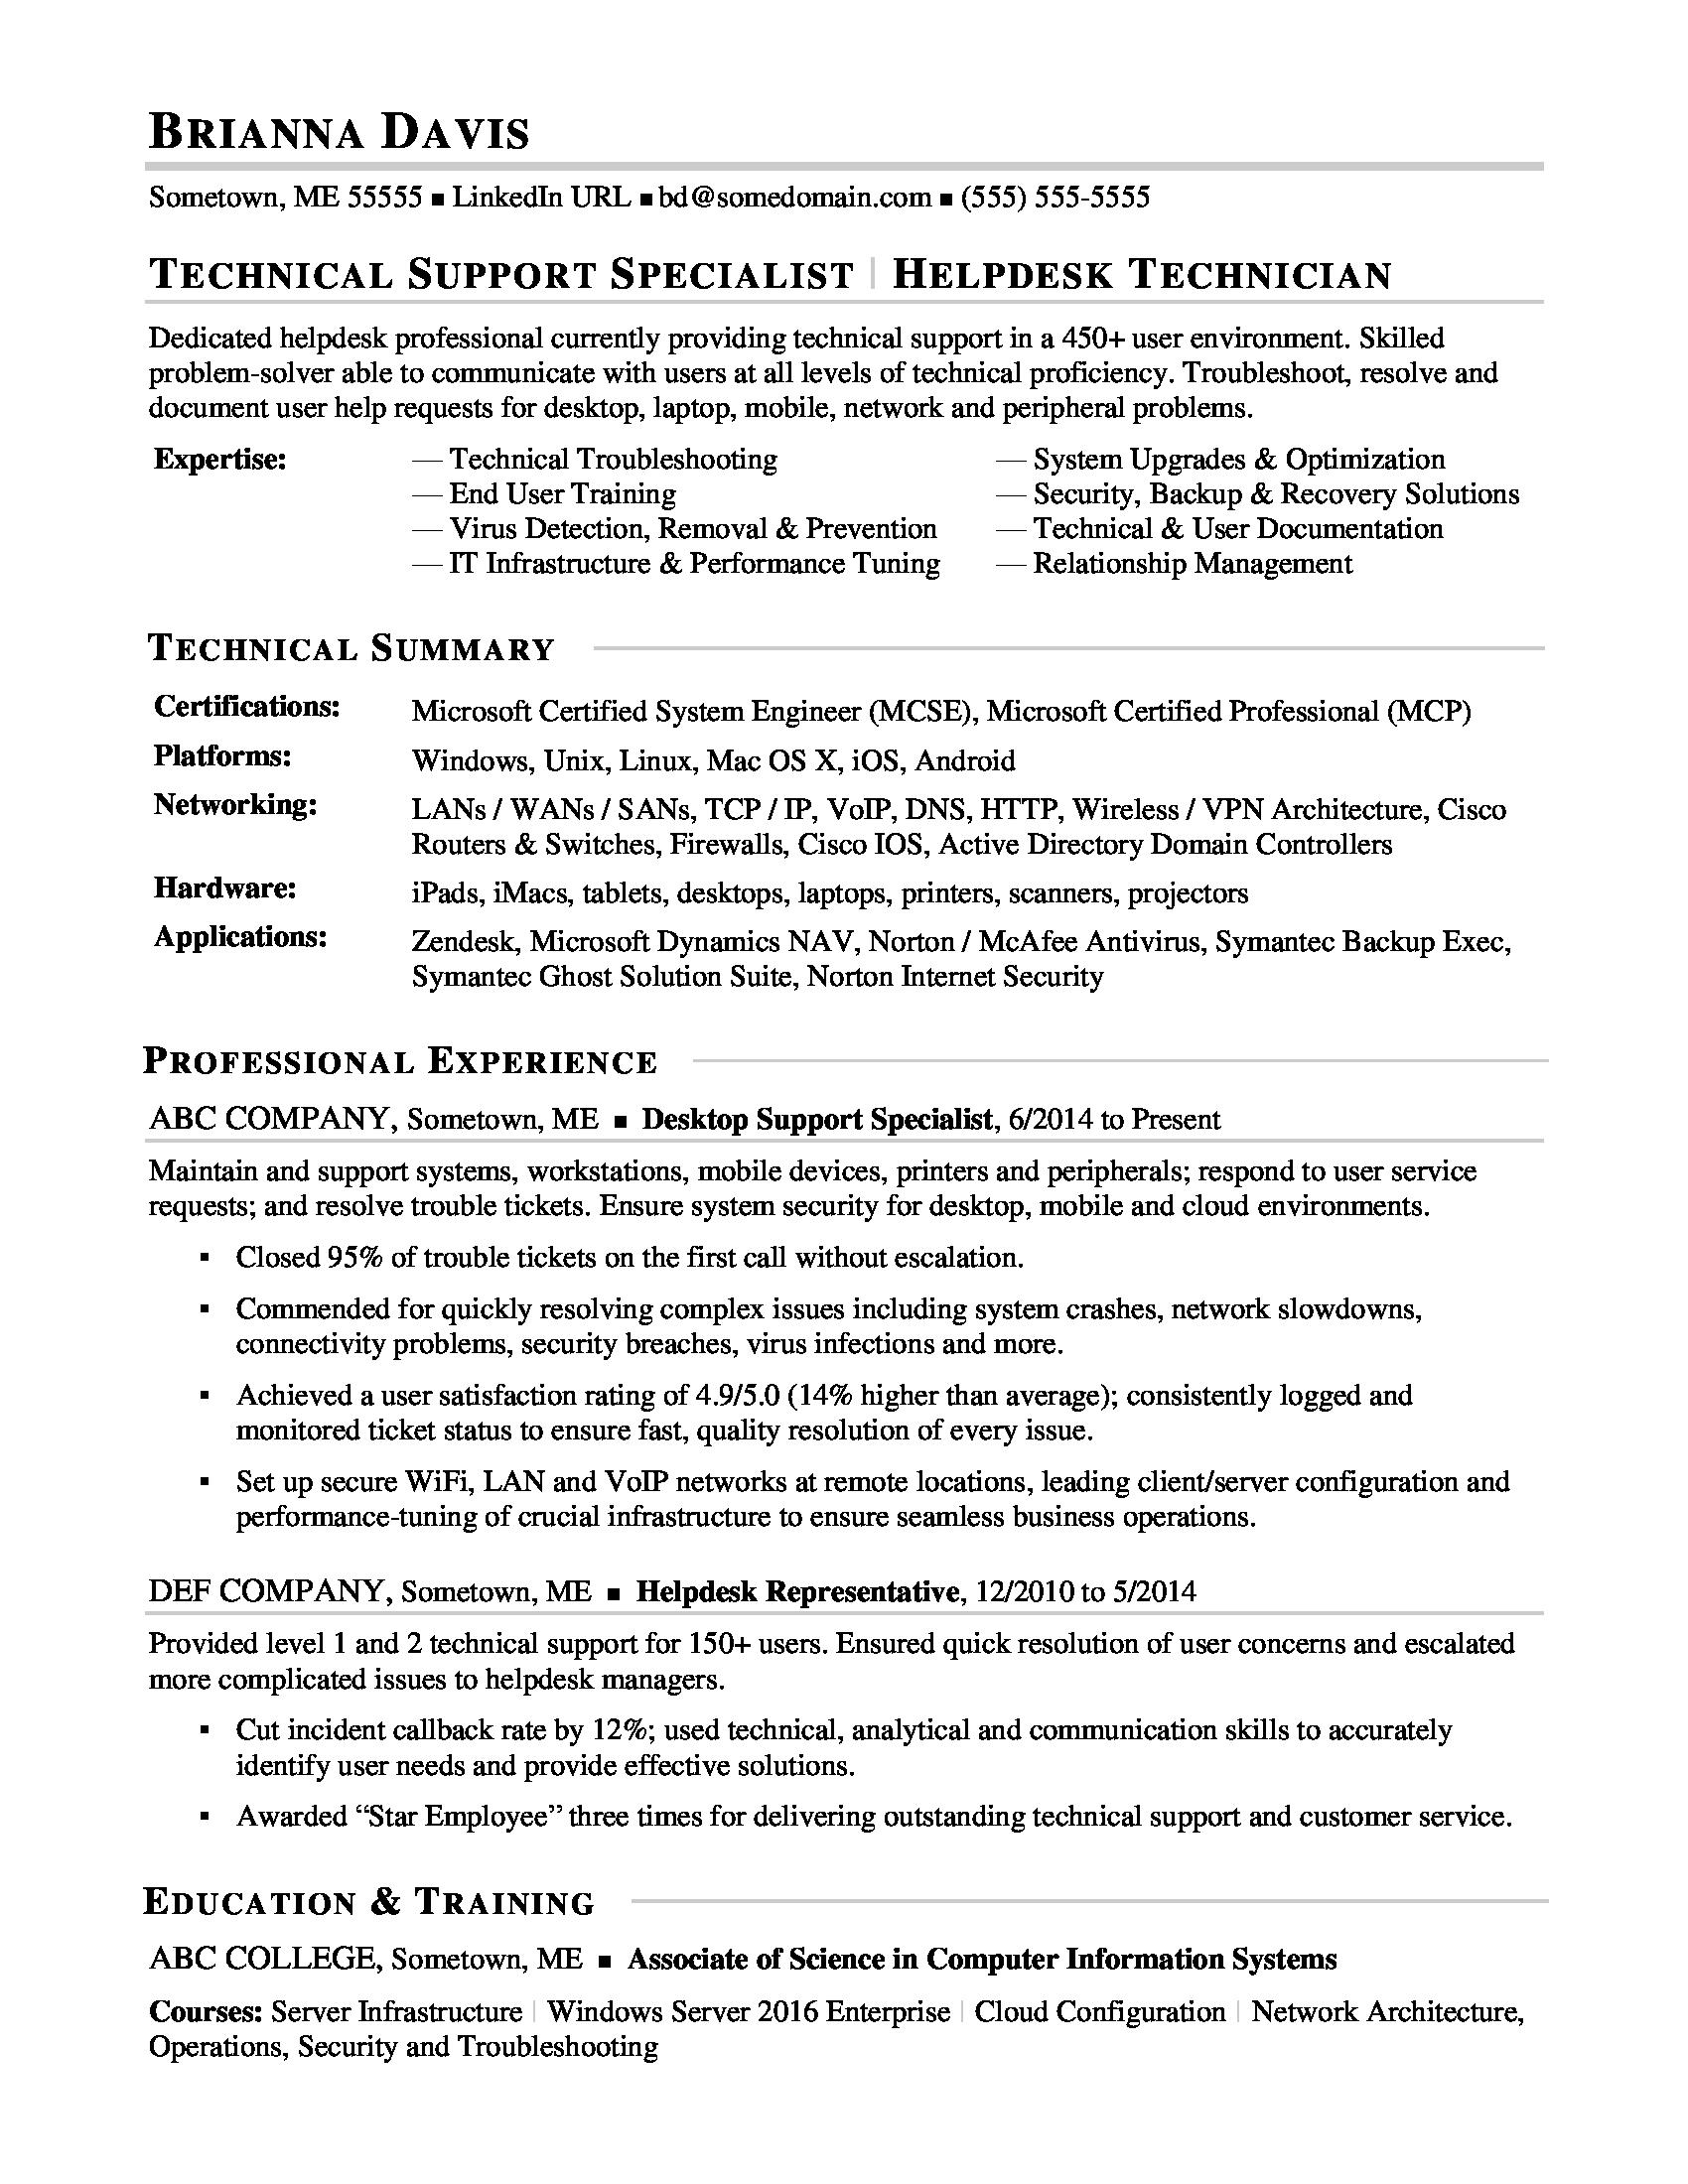 Sample Resume For Experienced IT Help Desk Employee  Technical Support Resume